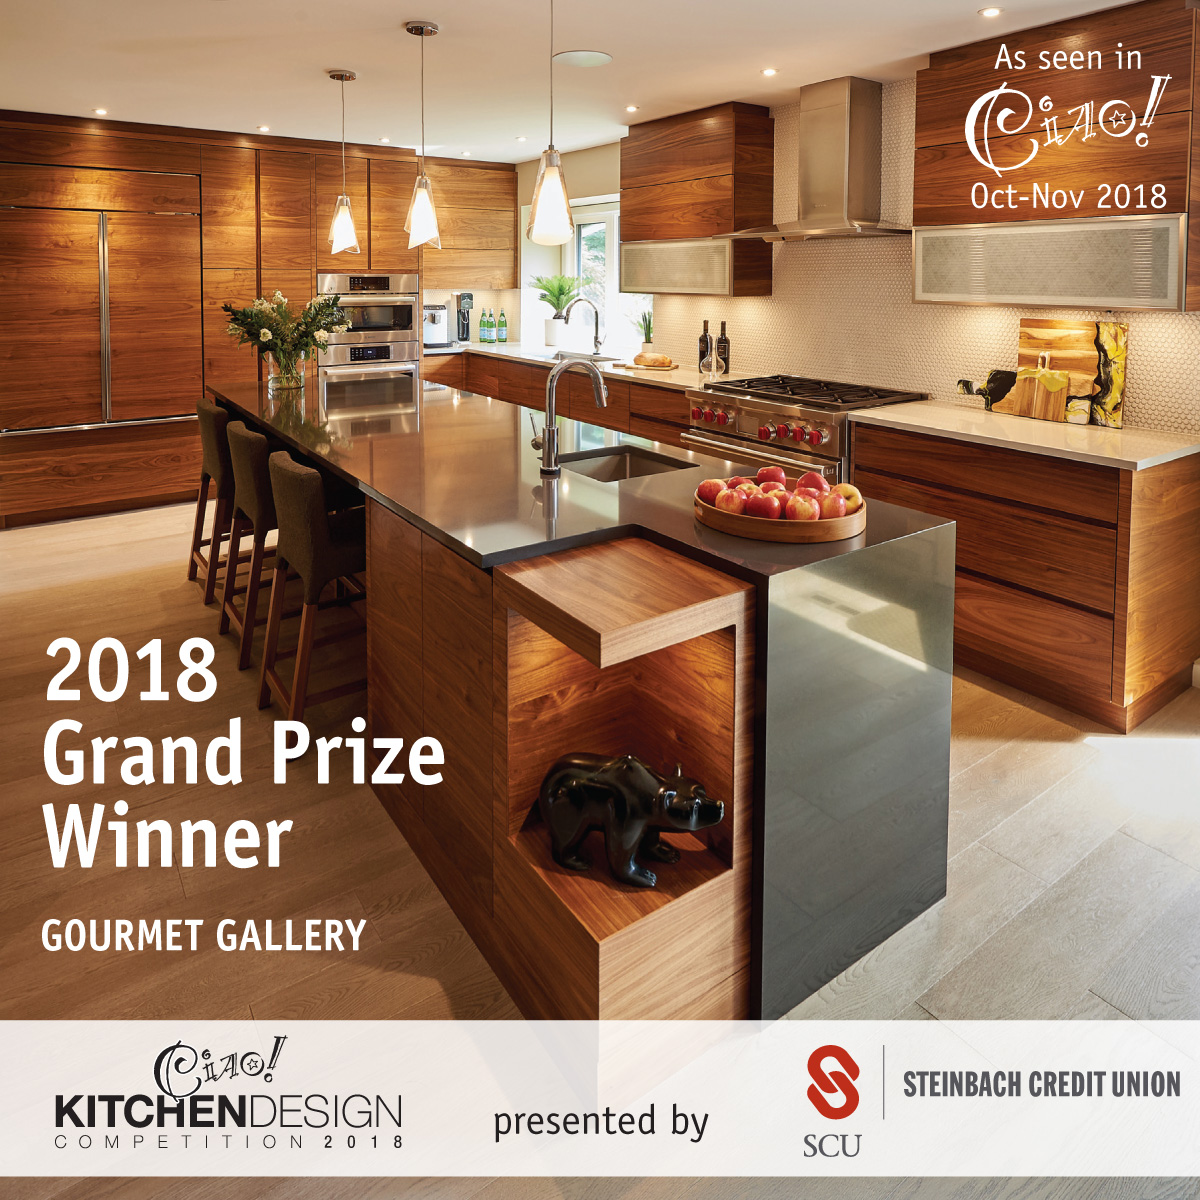 Best Kitchen of the Year - Ciao Magazine 2018